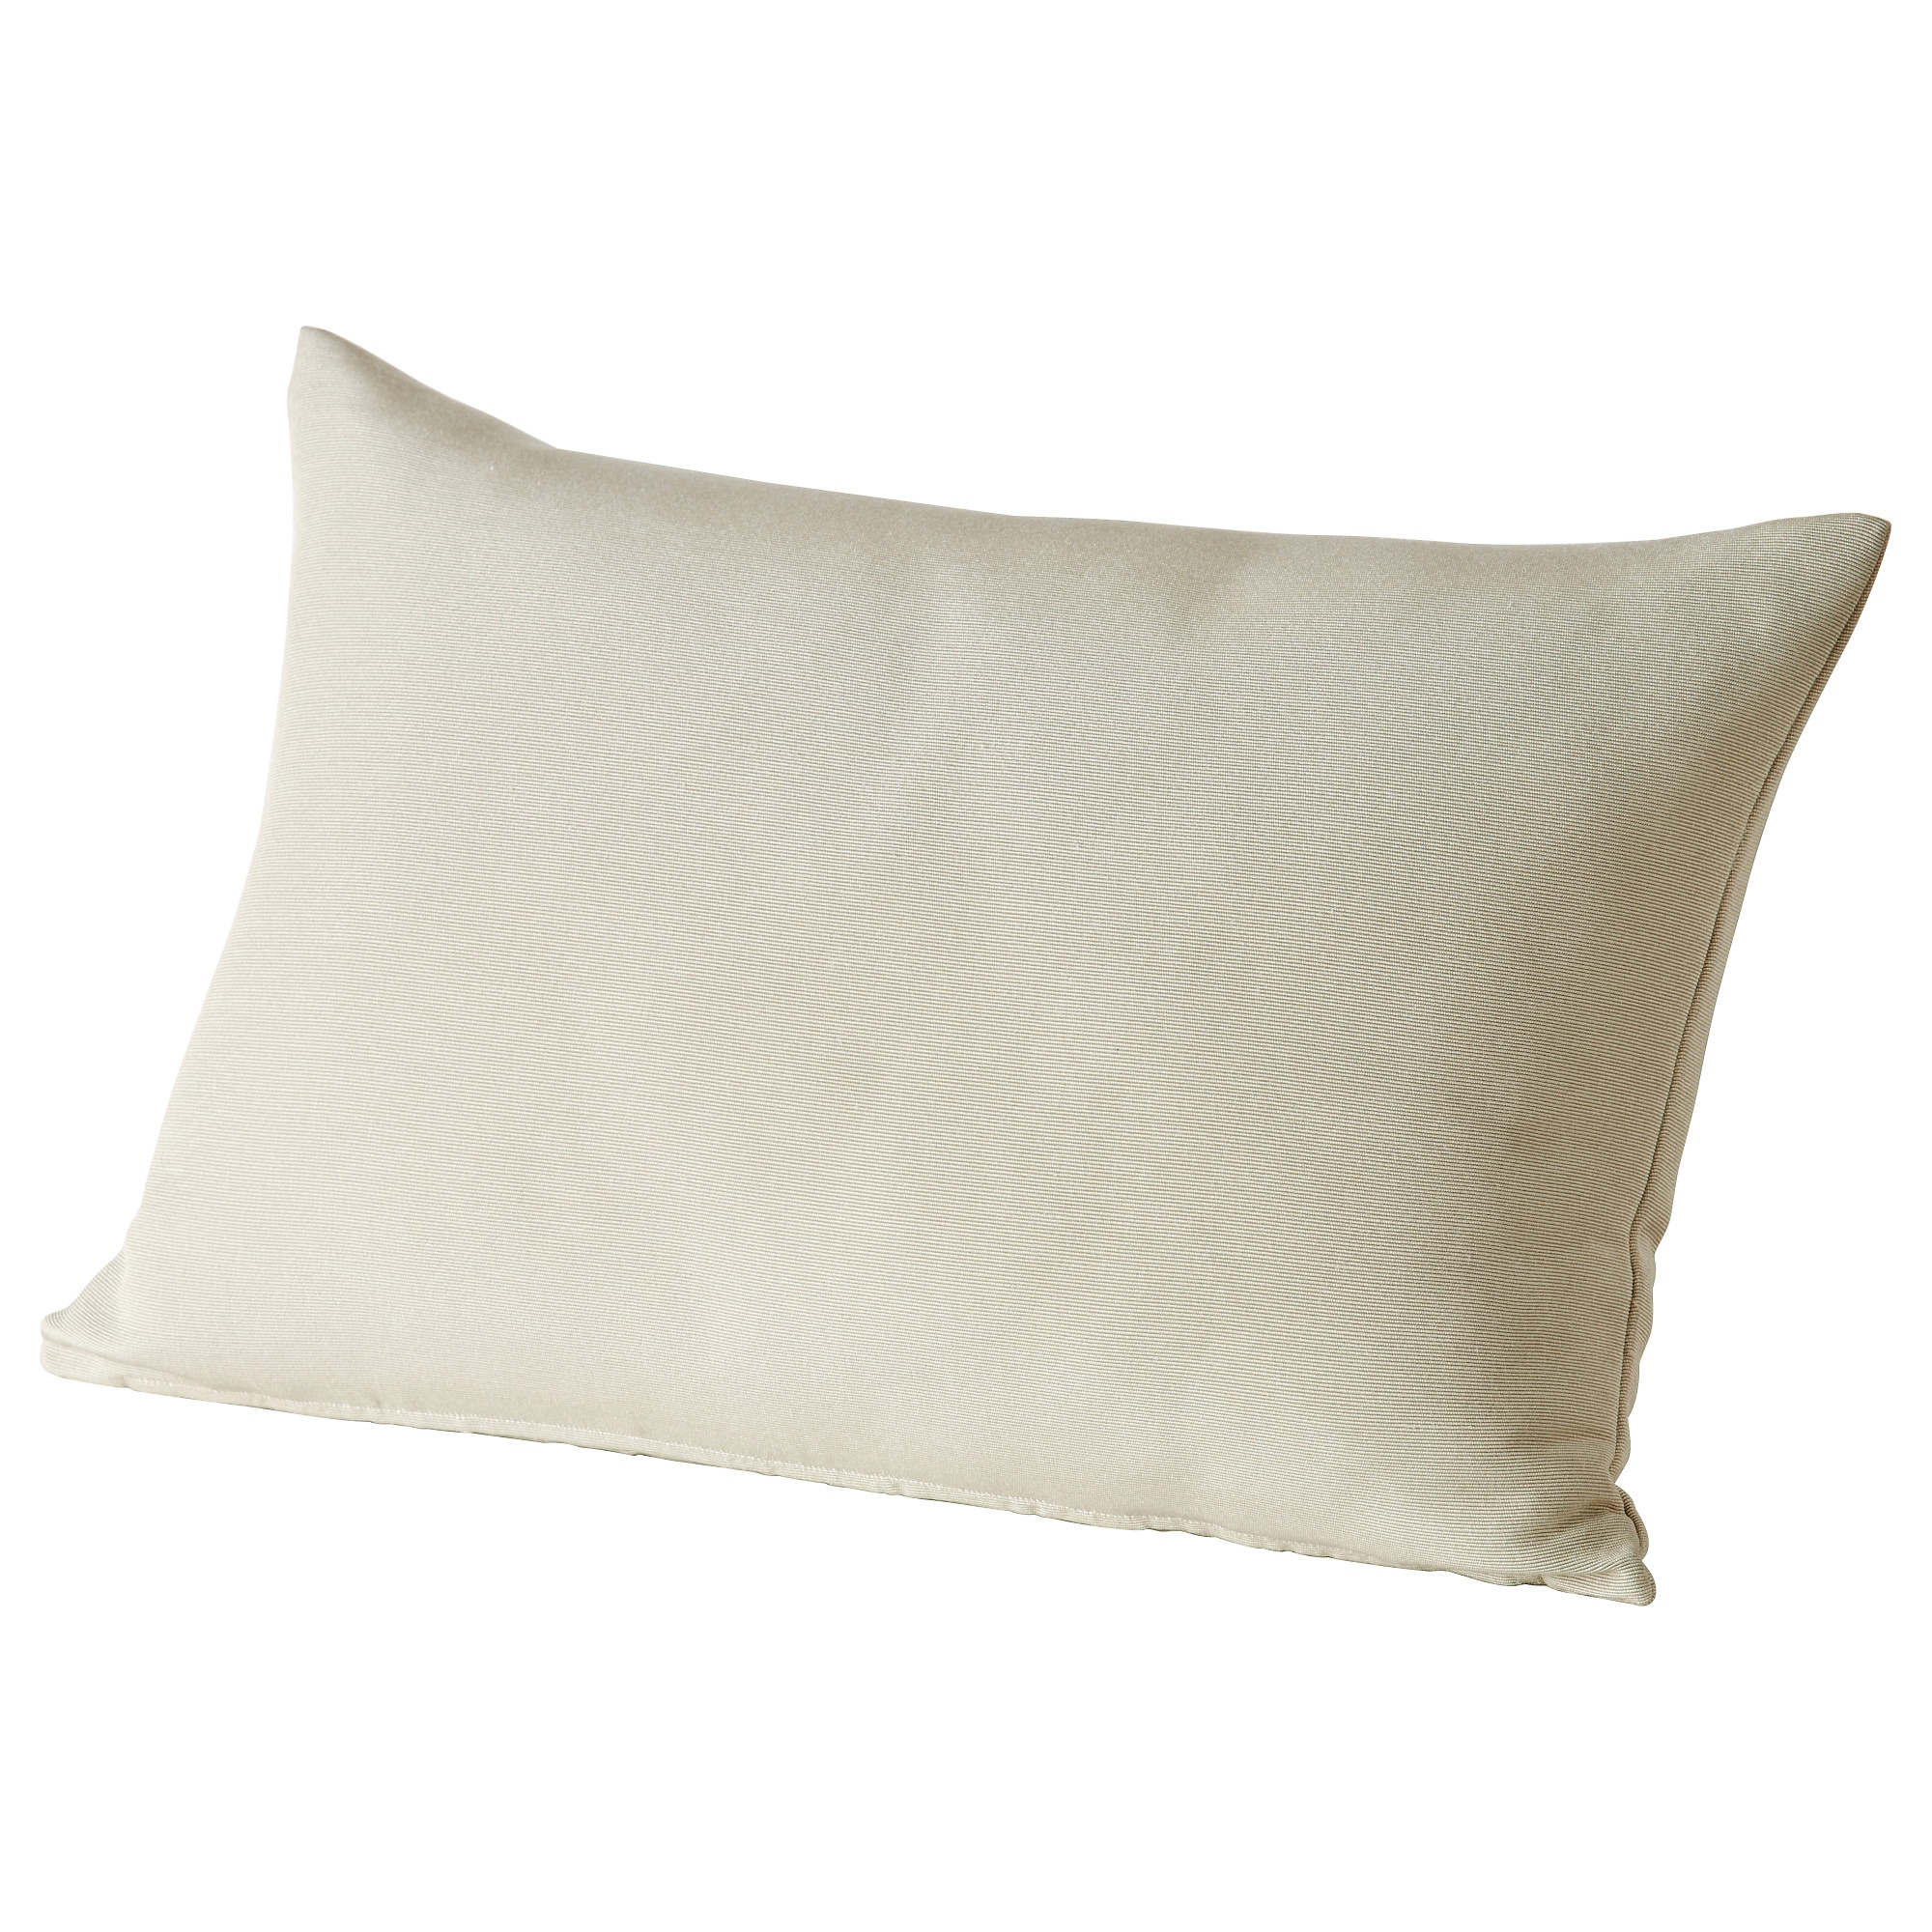 H LL  back cushion  outdoor  beige Width  24   Depth  17   ThicknessOutdoor Cushions   Pillows   IKEA. Exterior Cushions Canada. Home Design Ideas